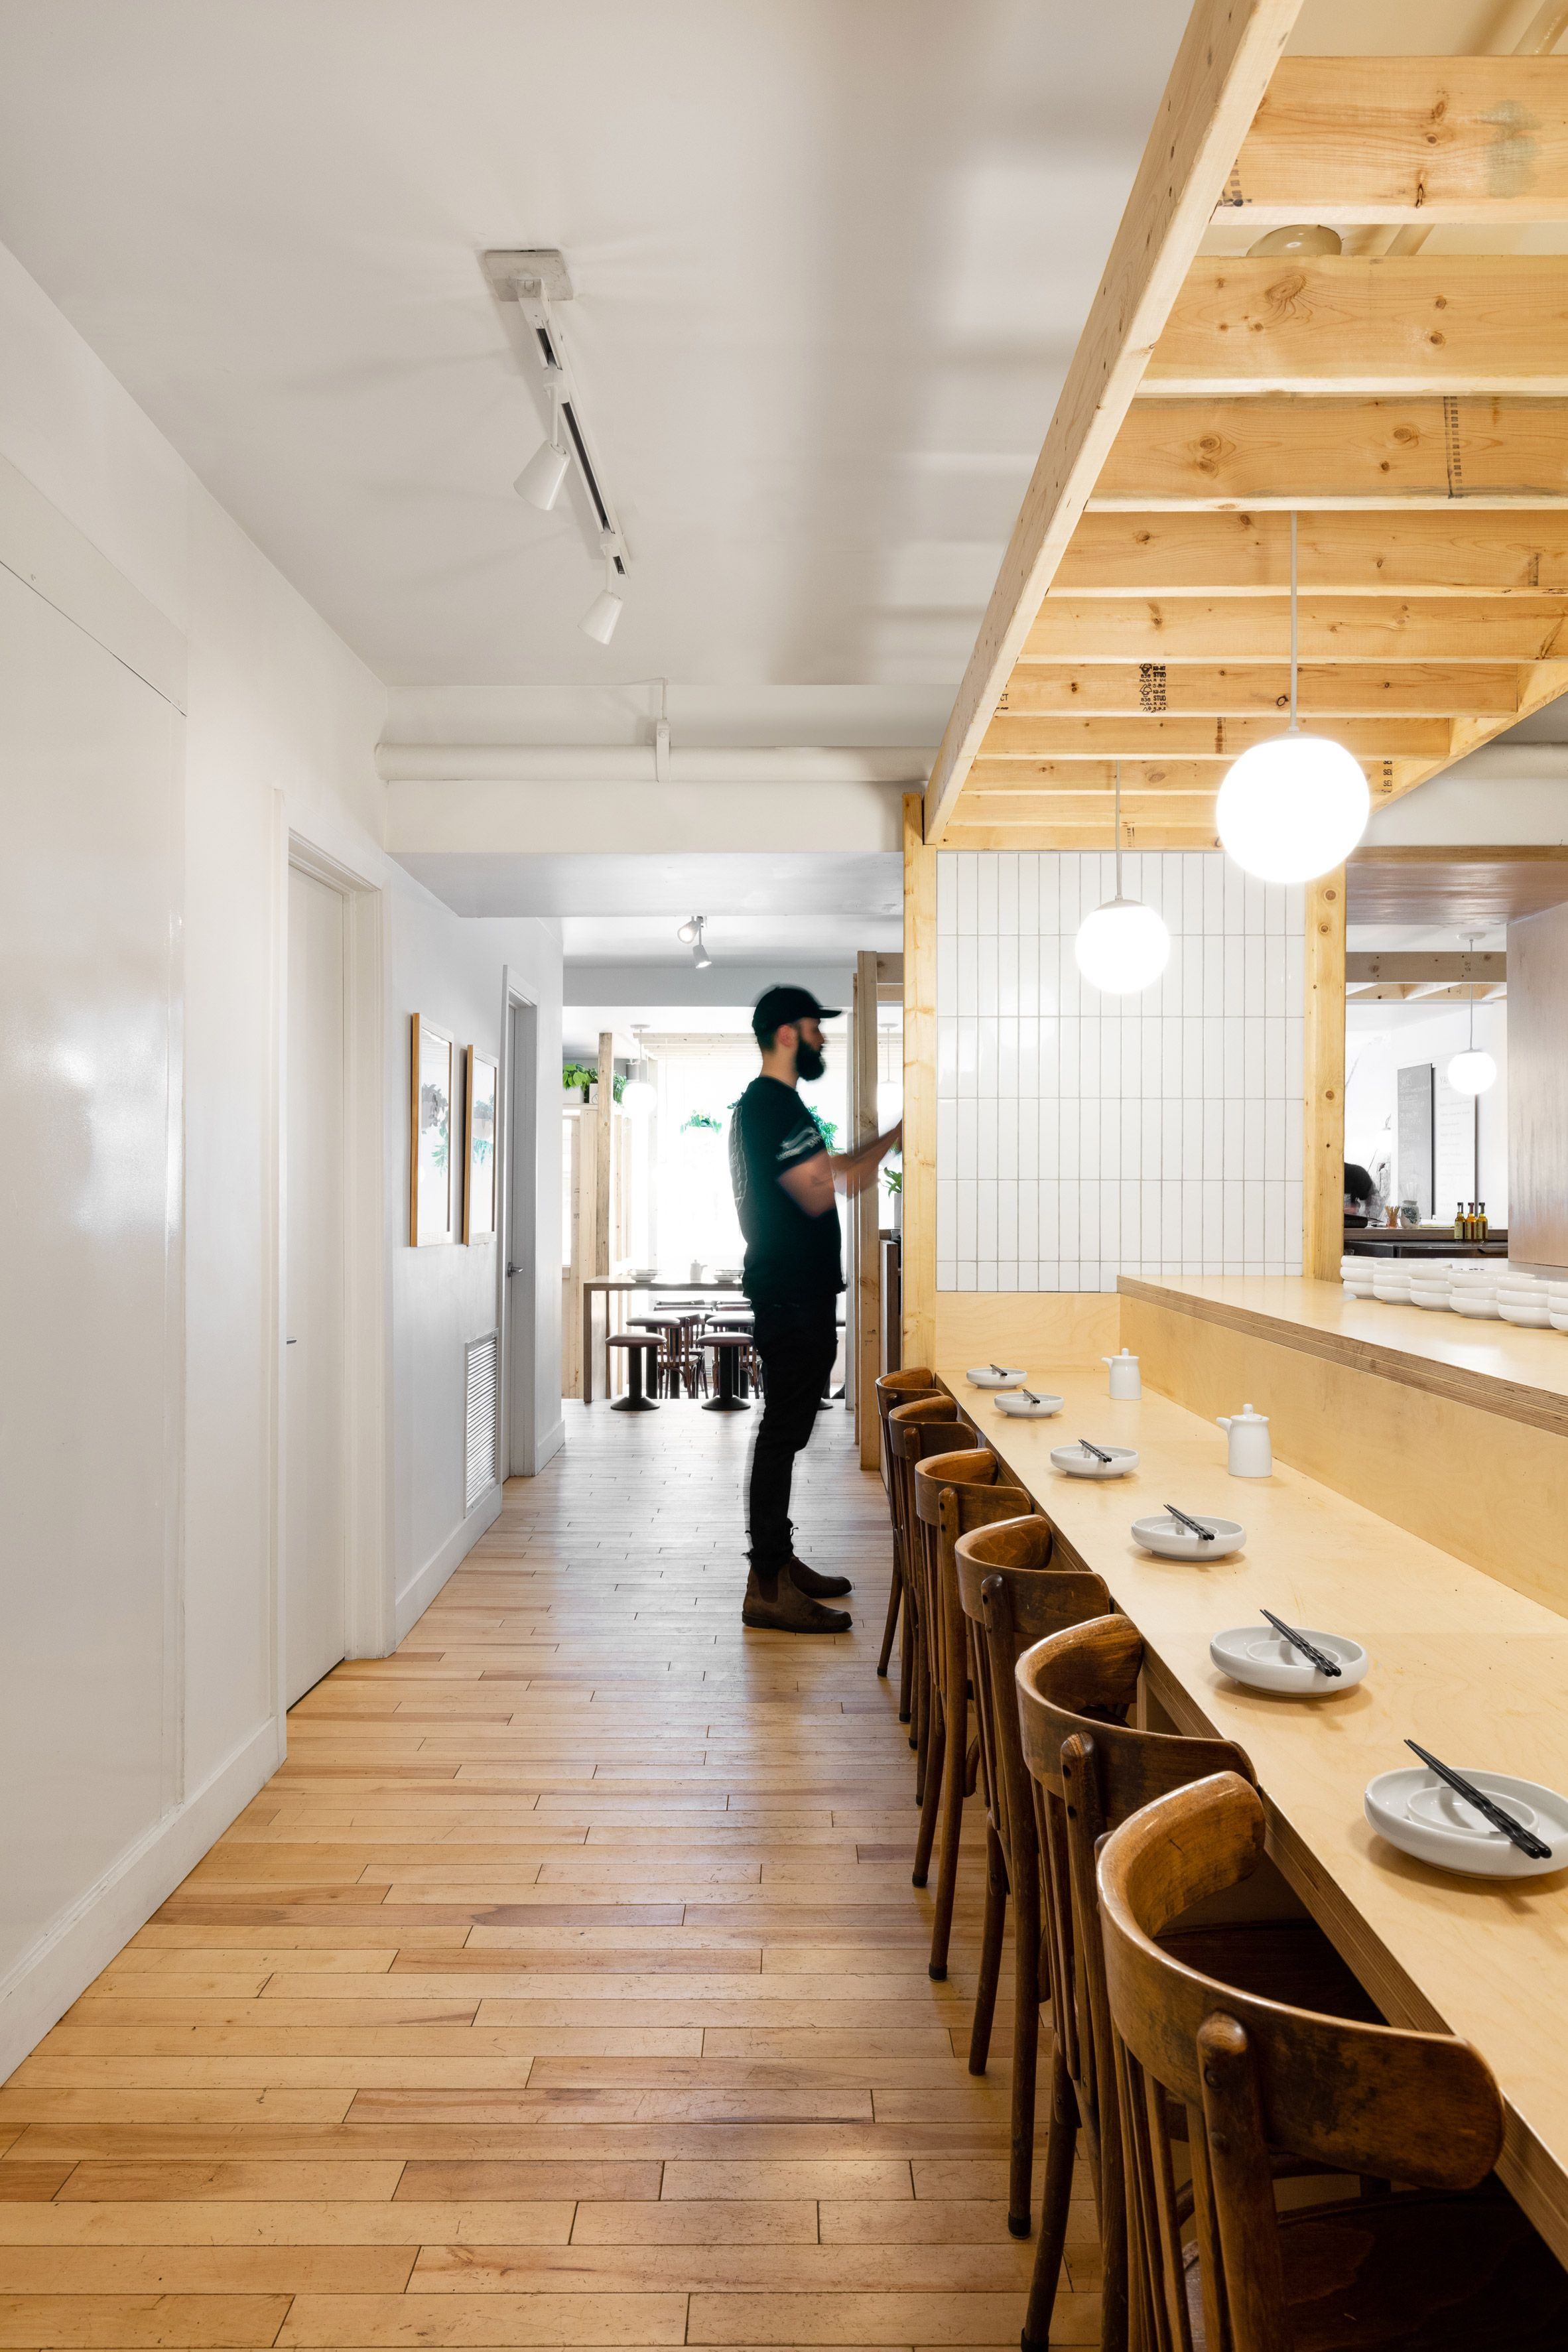 Simple Materials Throughout The Restaurant Include White Tiles Plywood For Built In Furniture And Wooden Floo Patio Furniture Sets Built In Furniture Izakaya